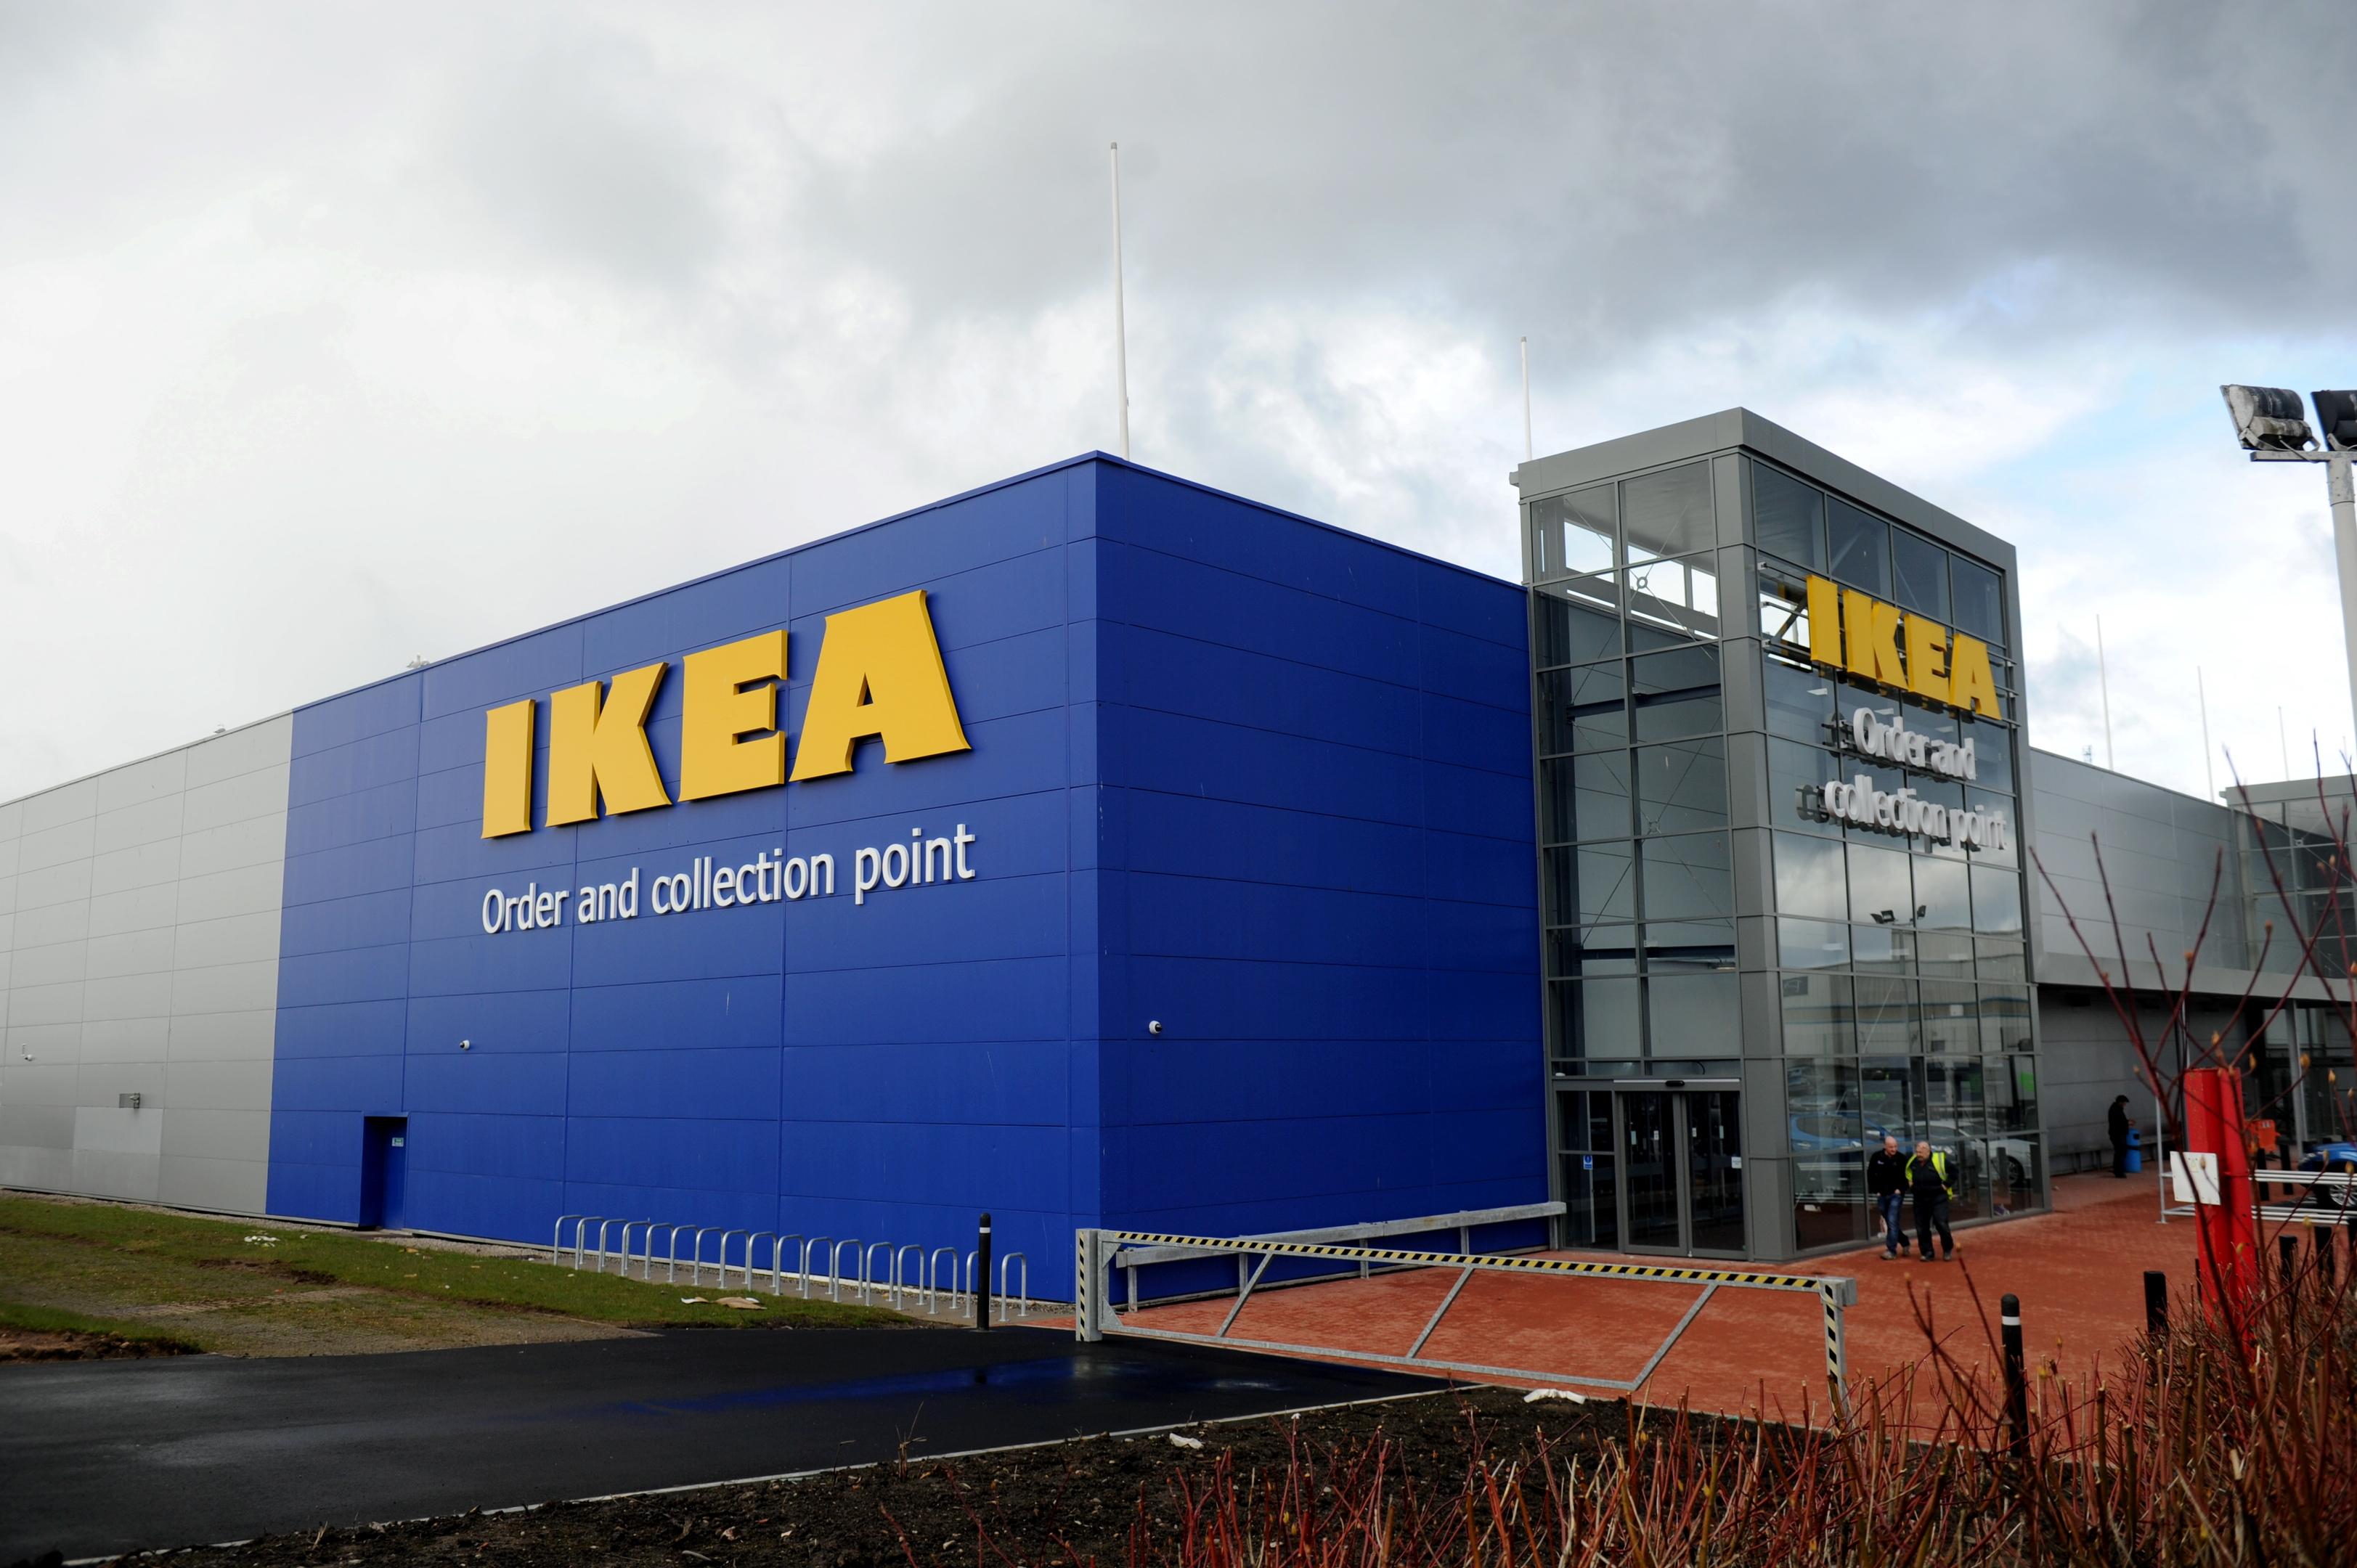 Plans for two retail units on the landscaping area next to Ikea have been refused following a review